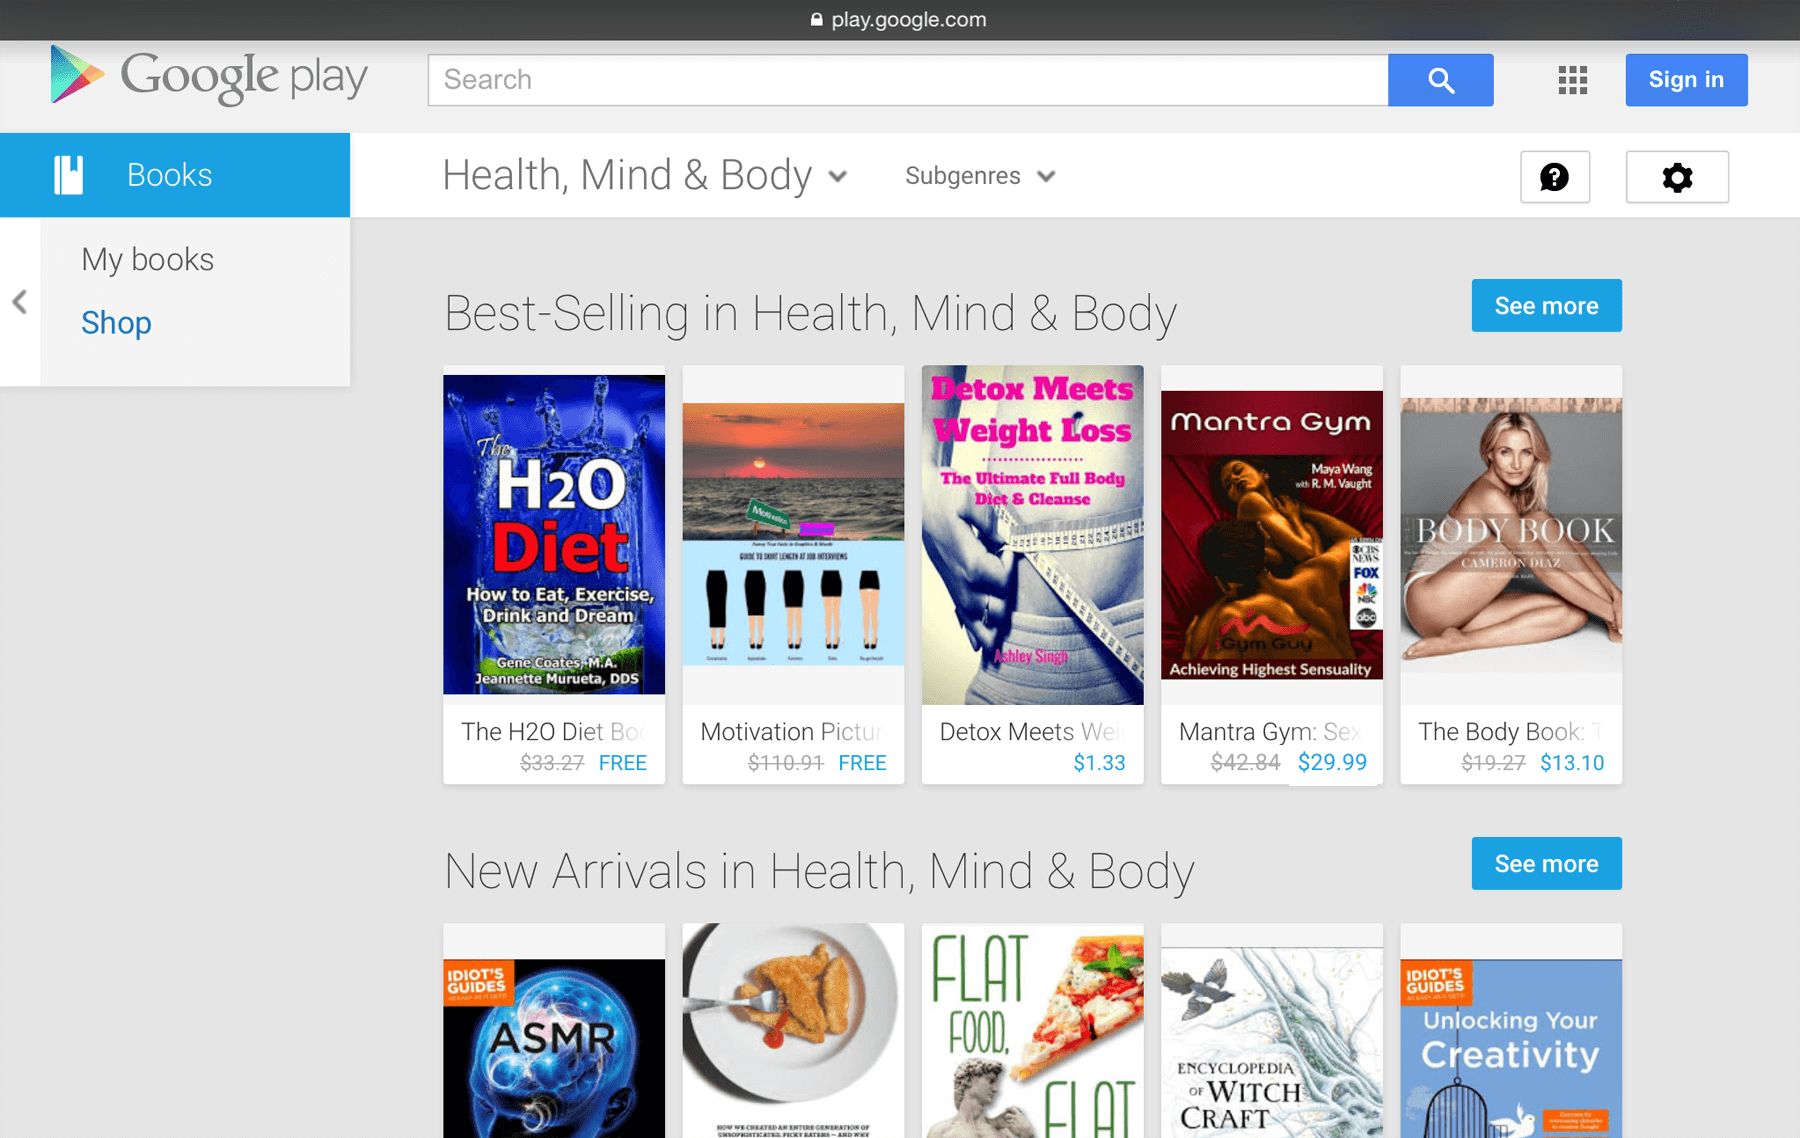 Mantra Gym Hits Top Row at Google Book Store